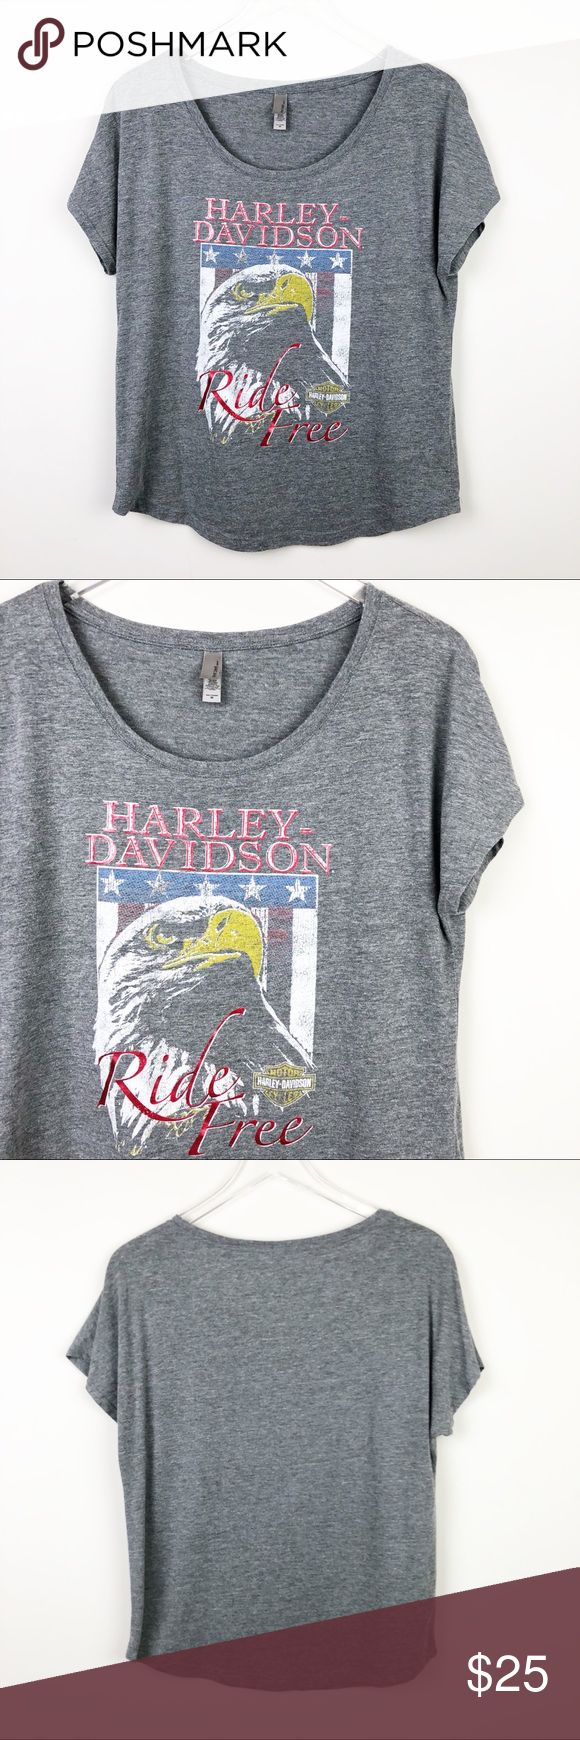 """Harley Davidson   Graphic Tee Rise Free Eagle Flag Women's fit graphic tee. Cap dolman Sleeve. Metallic accents on graphic.  ▪️Pit to Pit: 19"""" ▪️Length: 25"""" ▪️Condition: Pre-Owned. Excellent condition.  ▫️T16 Next Level Apparel Tops Tees - Short Sleeve"""